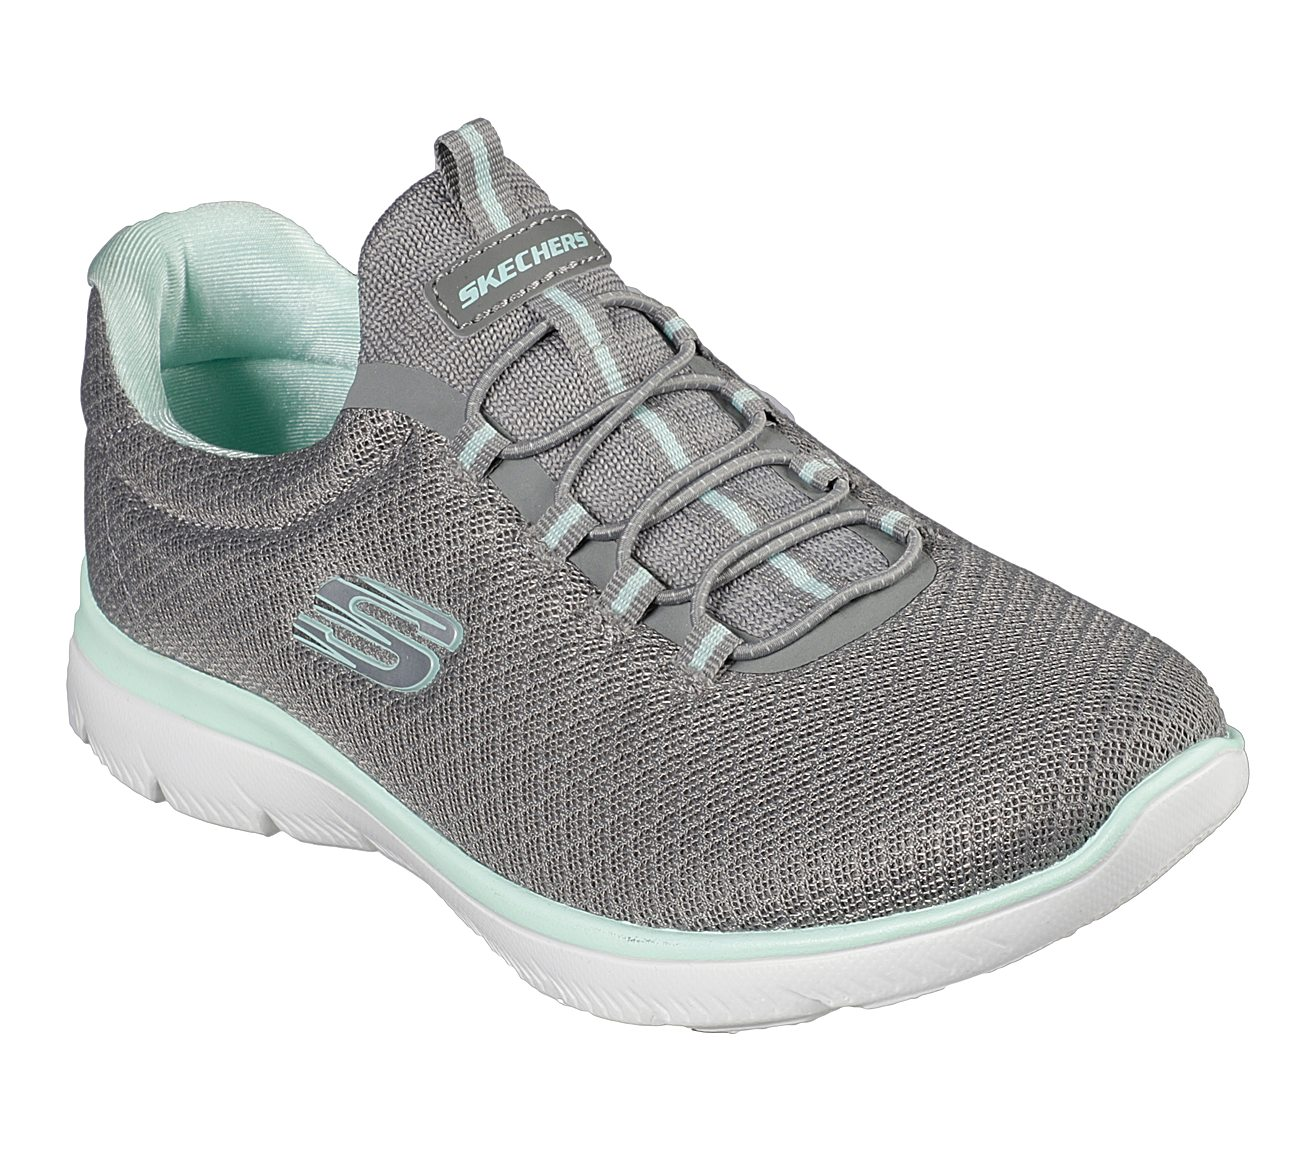 c7c67ca124bd5 Buy SKECHERS Summits Sport Shoes only $55.00